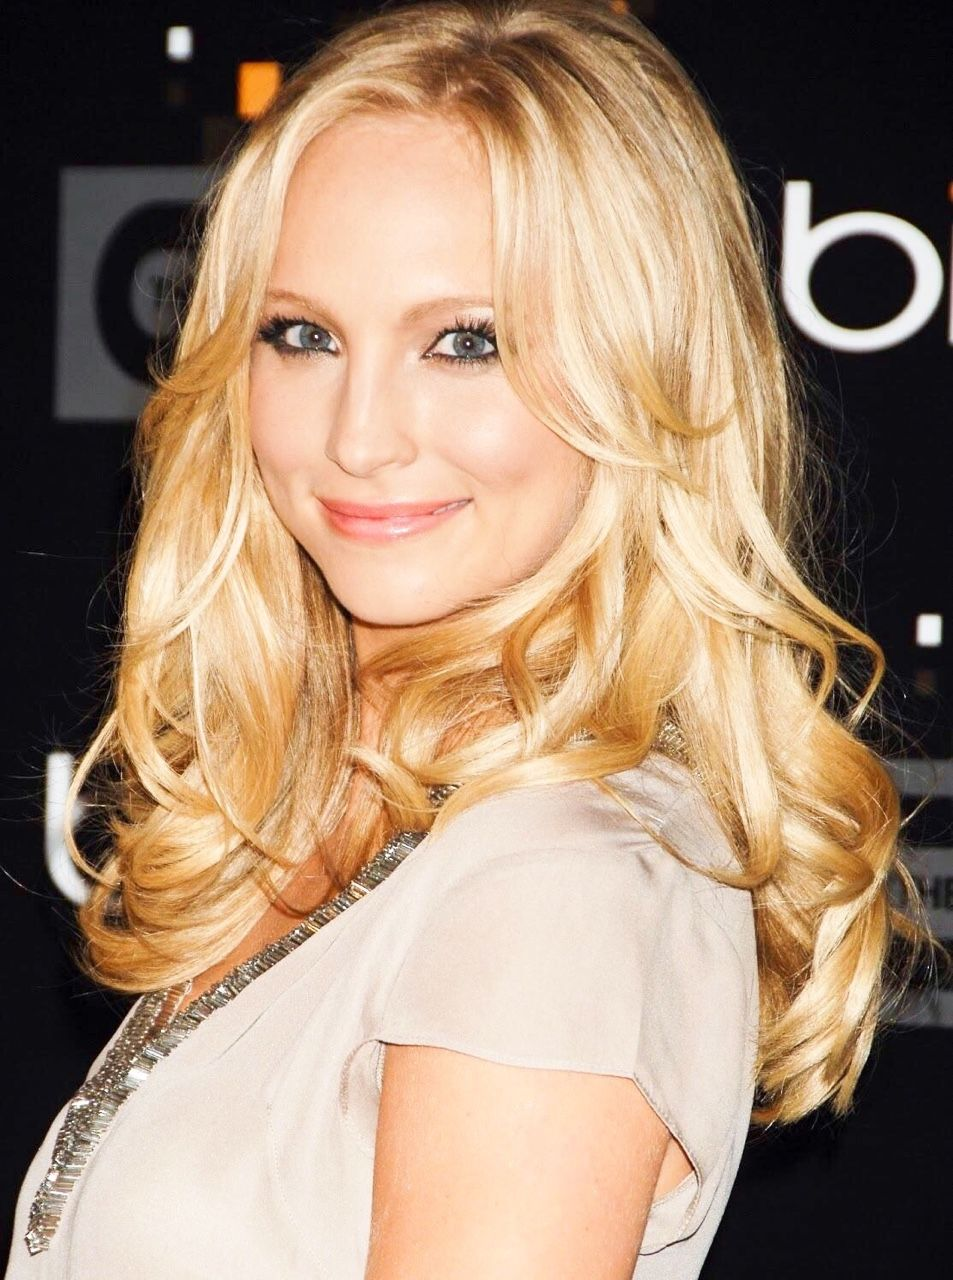 Hacked Candice Accola King naked (39 images), Topless